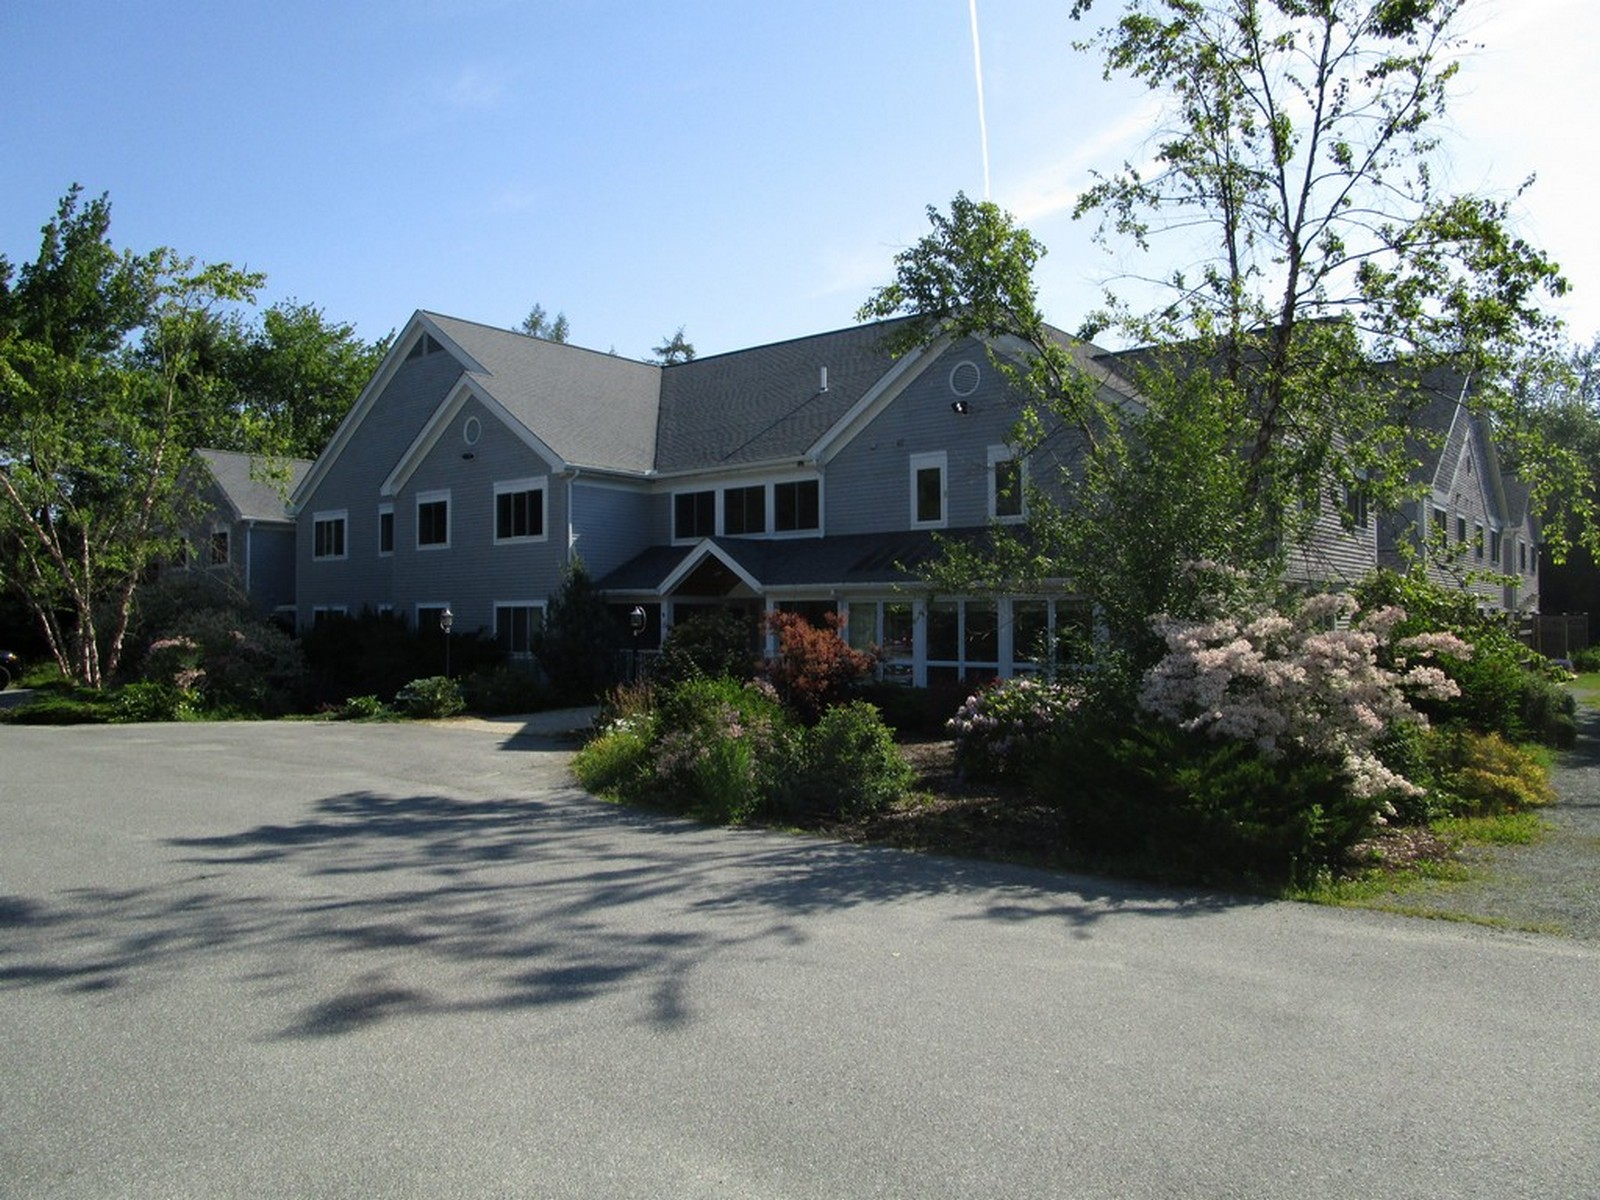 Condominium for Sale at East Ridge Estates-Unit 206 79 East Ridge Rd #206 Southwest Harbor, Maine, 04679 United States